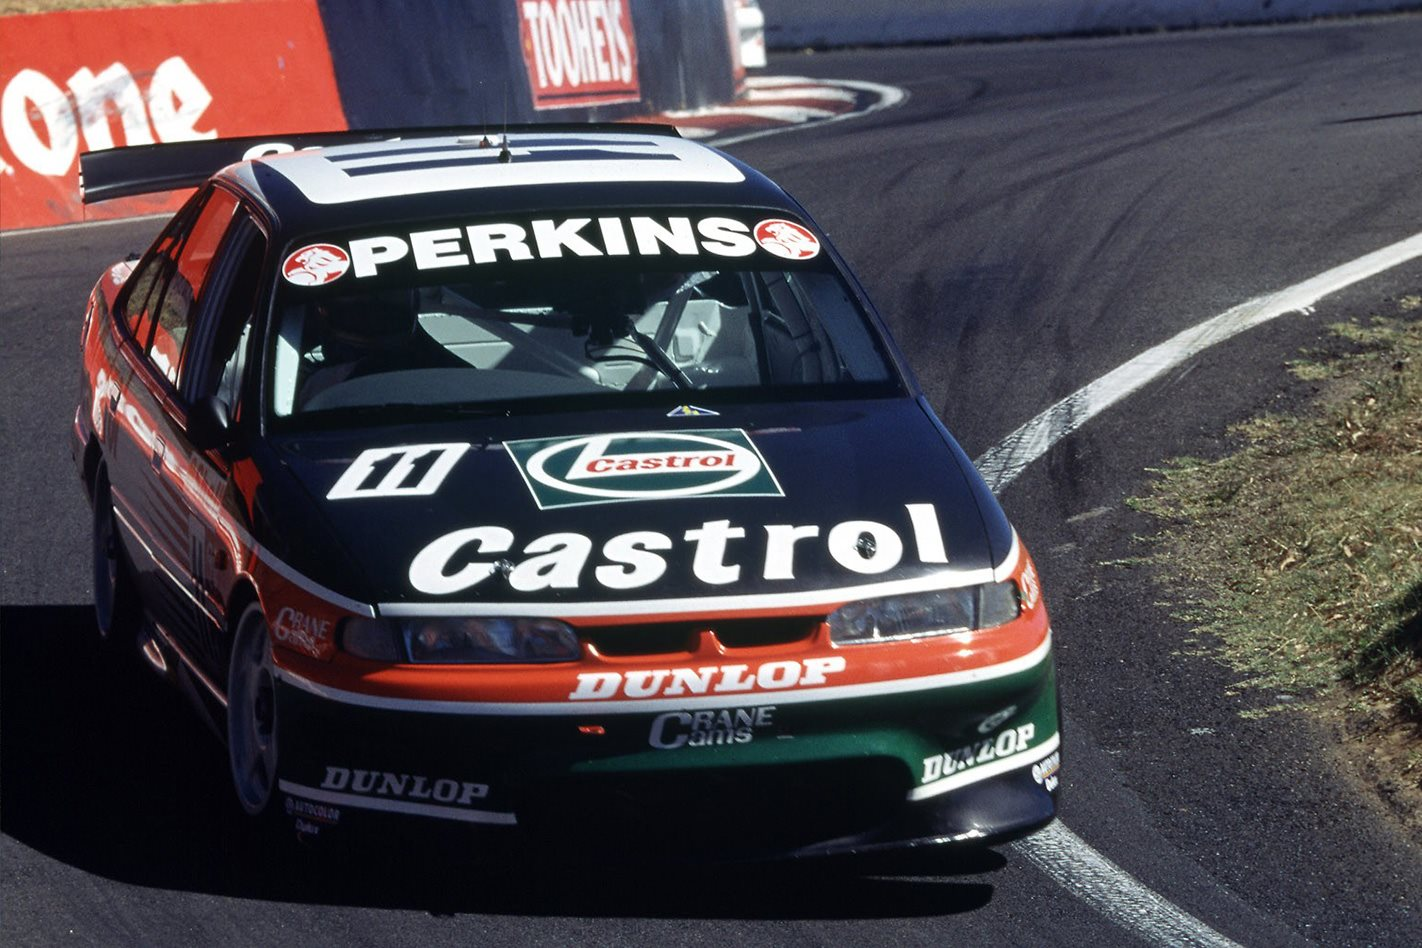 Top 10 Holden Motorsport moments: One year on from Holden's Aussie